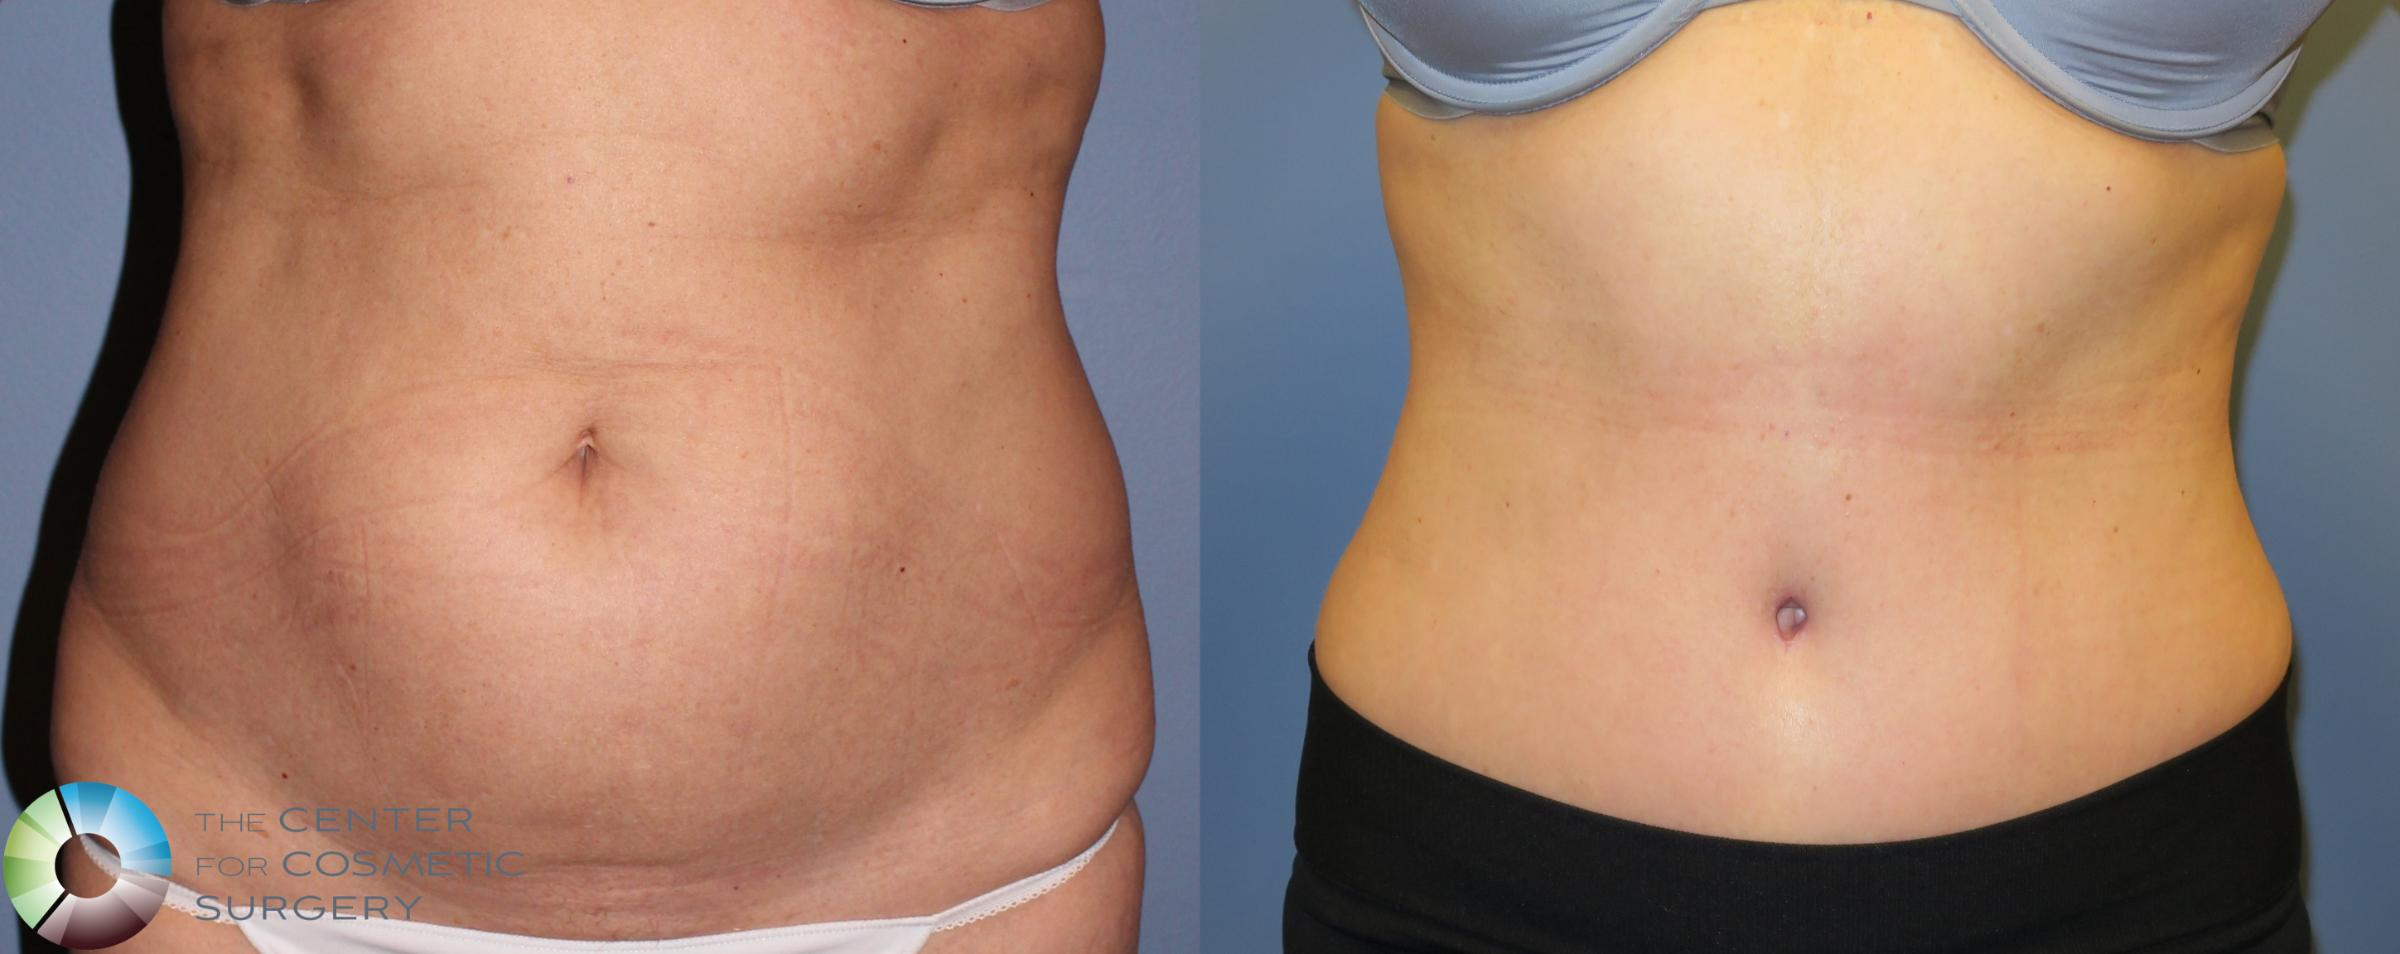 Tummy Tuck Case 853 Before & After View #1 | Golden, CO | The Center for Cosmetic Surgery